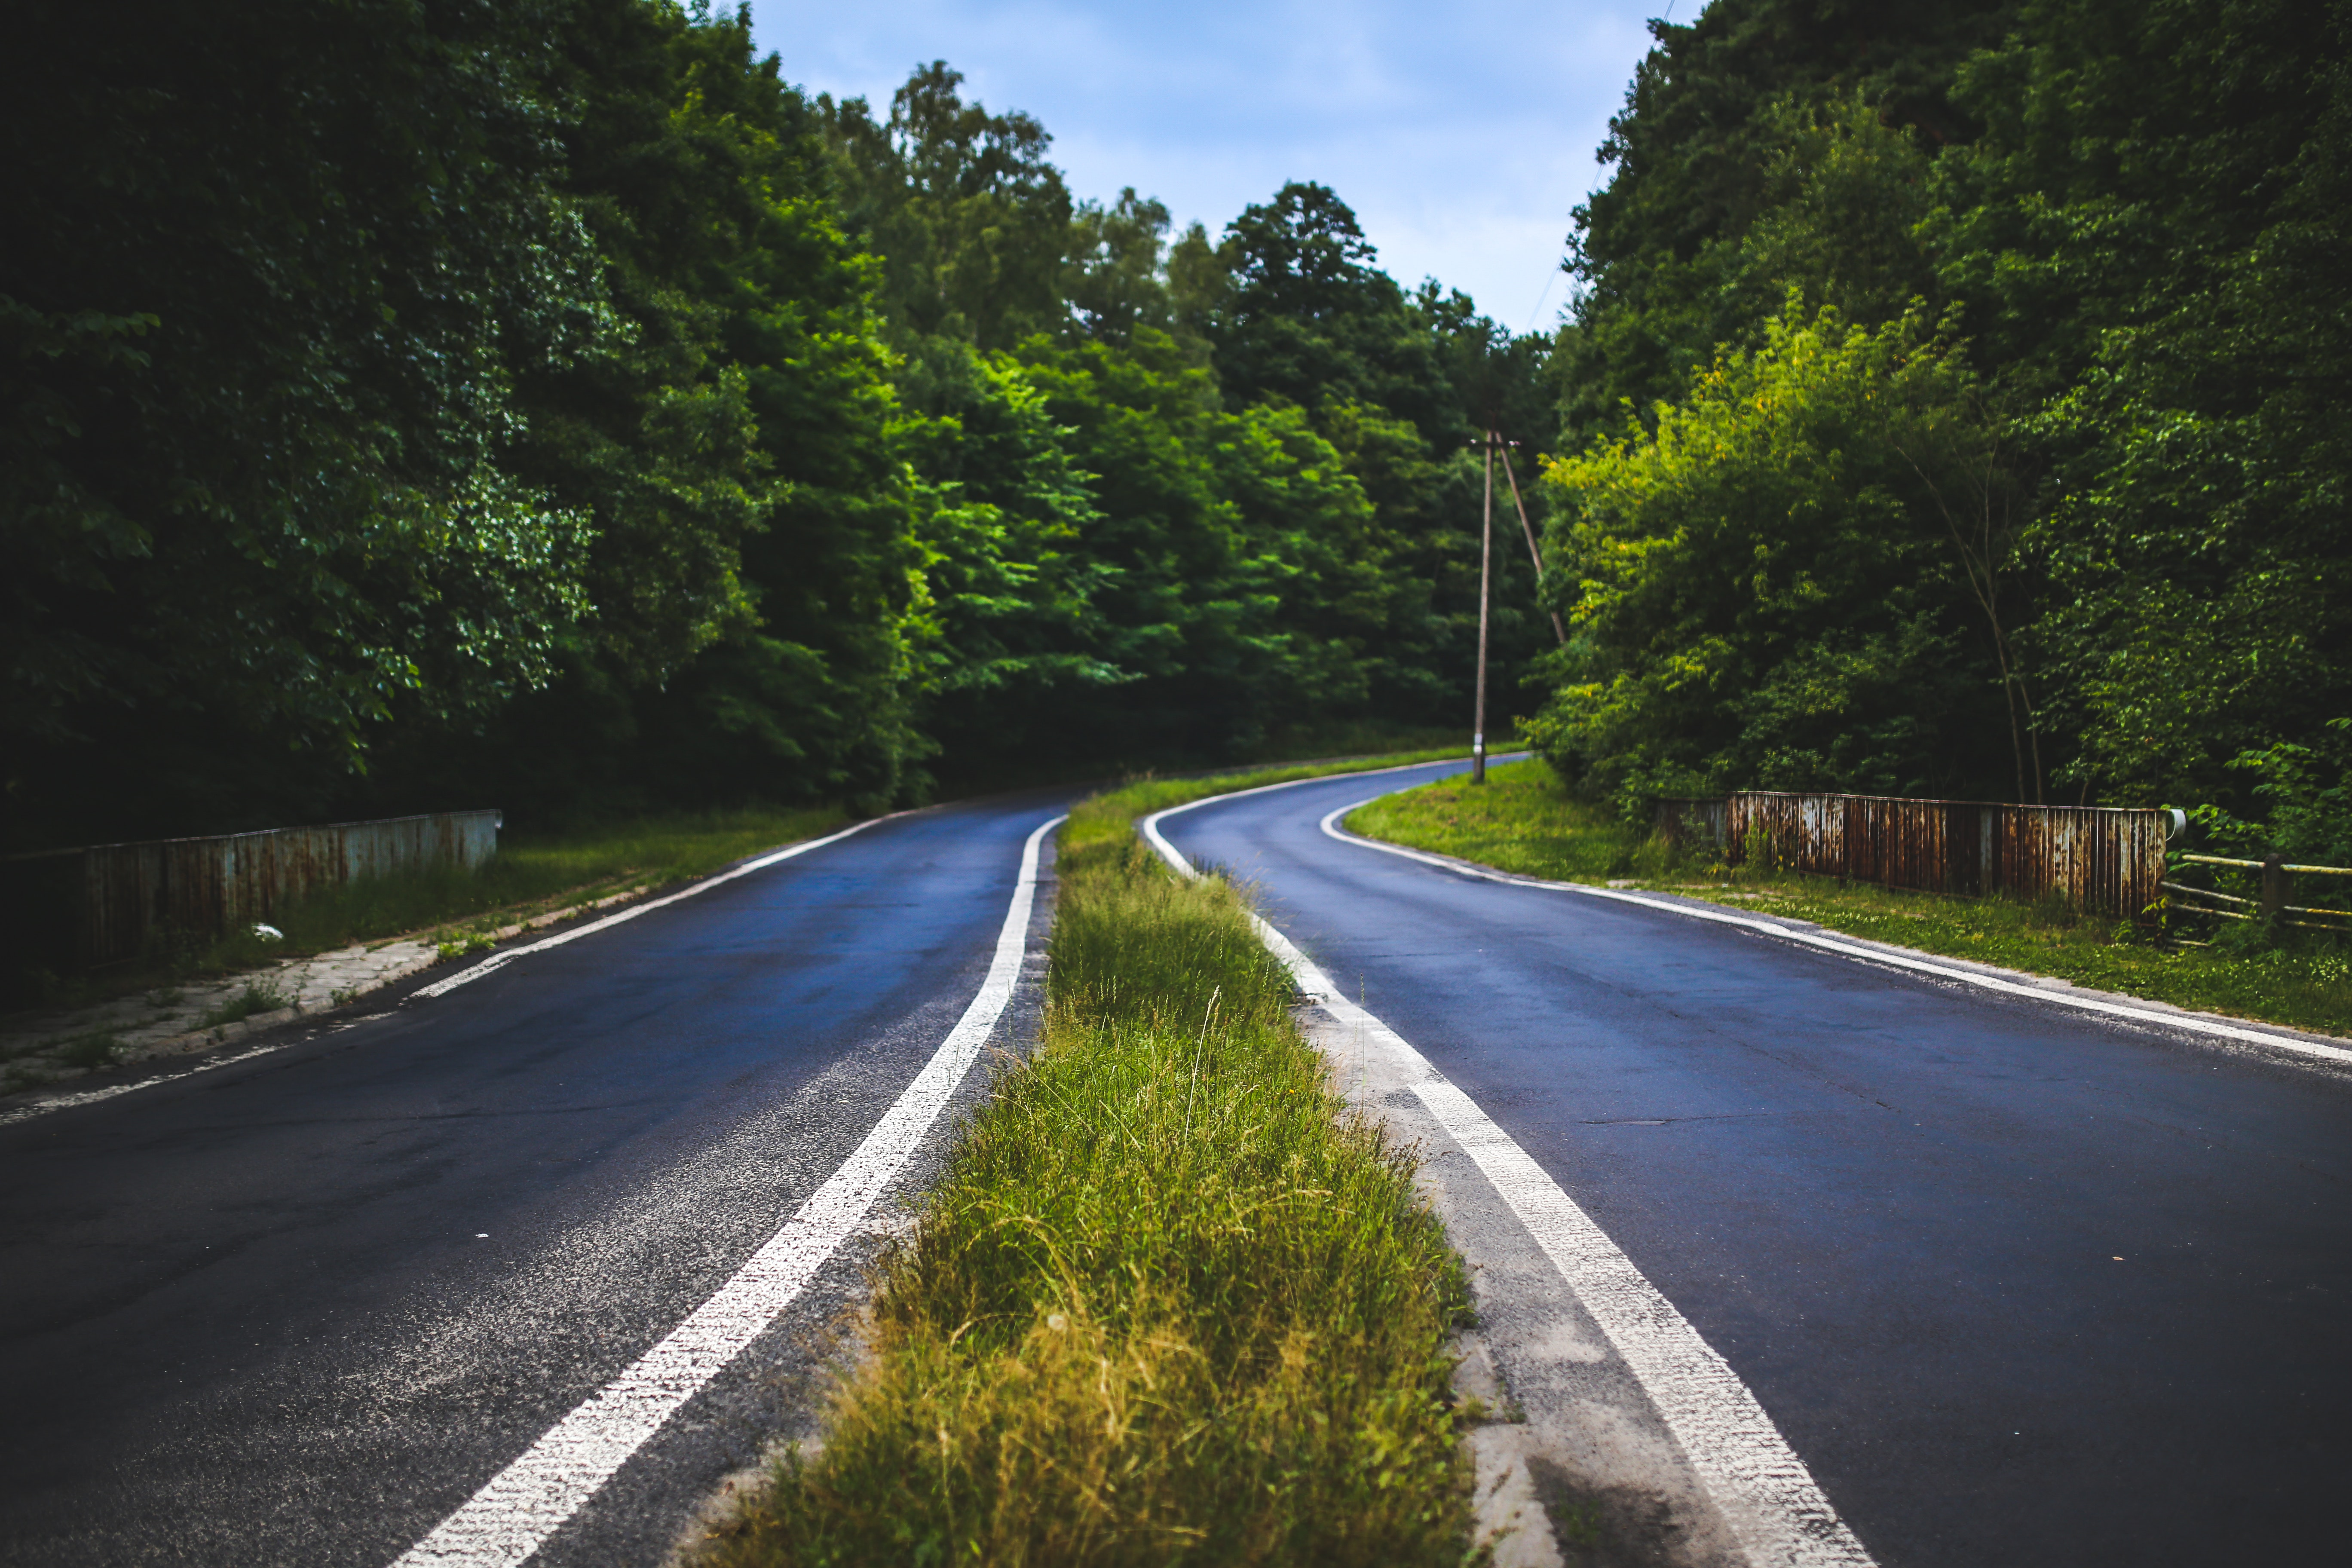 The forest road, Asphalt, Perspective, Way, Trip (journey), HQ Photo